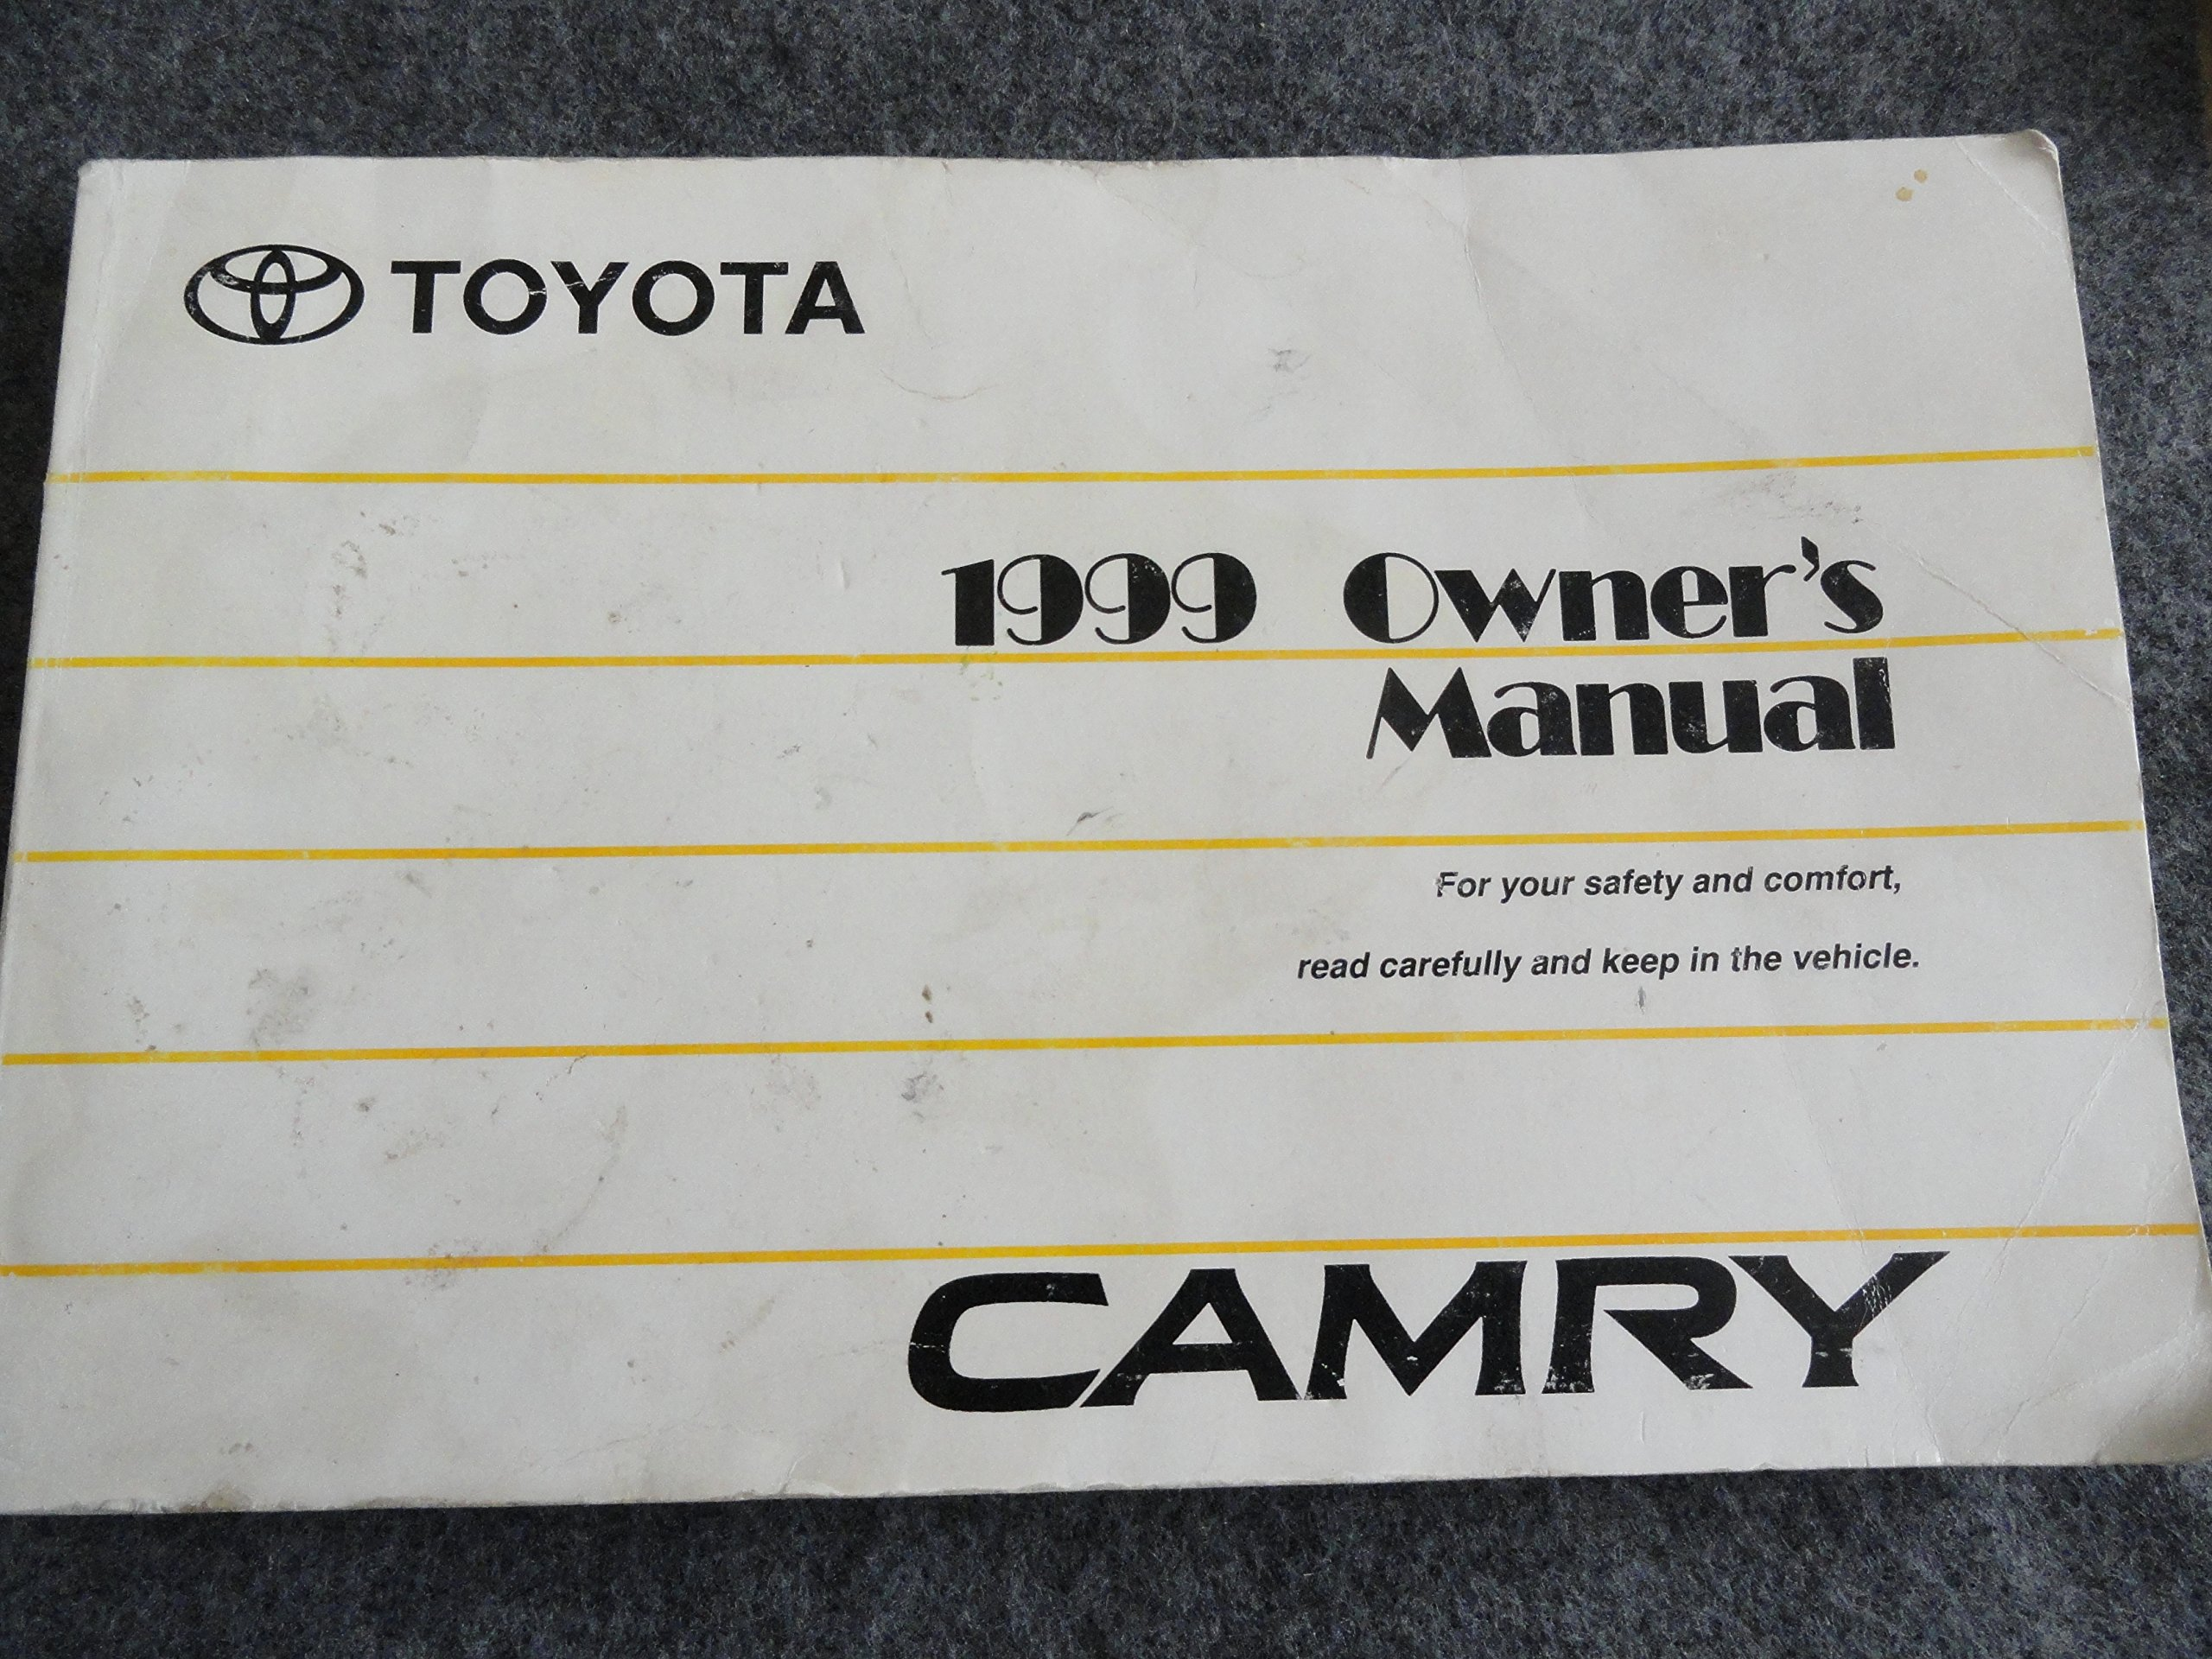 1999 Toyota Camry Owner's Manual: Toyota Motor Corporation: Amazon.com:  Books